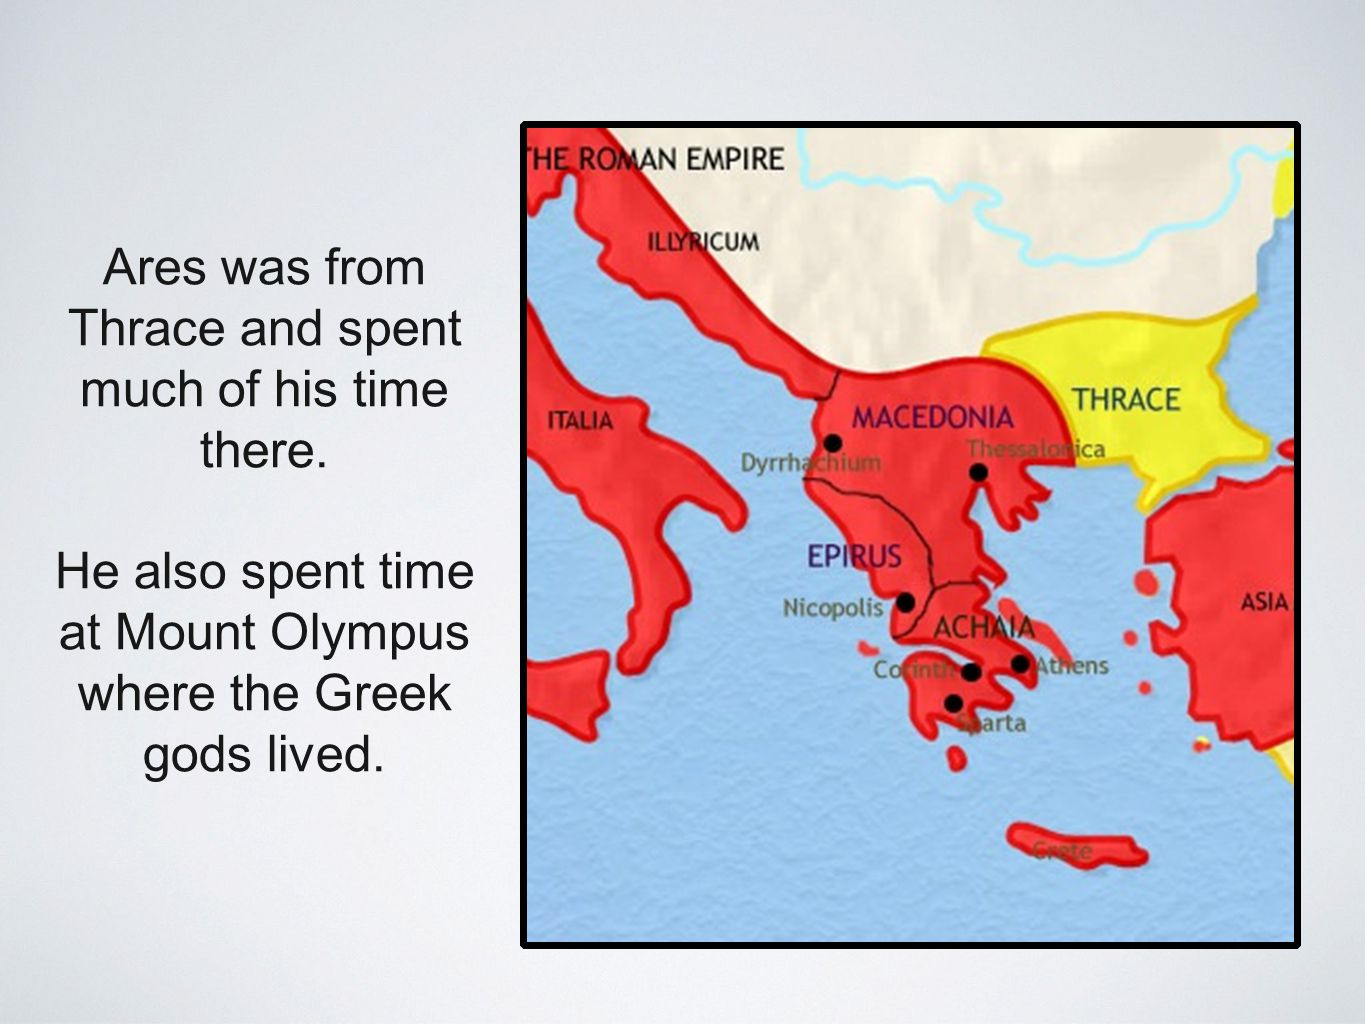 Ares was from Thrace and spent much of his time there. He also spent time at Mount Olympus where the Greek gods lived.